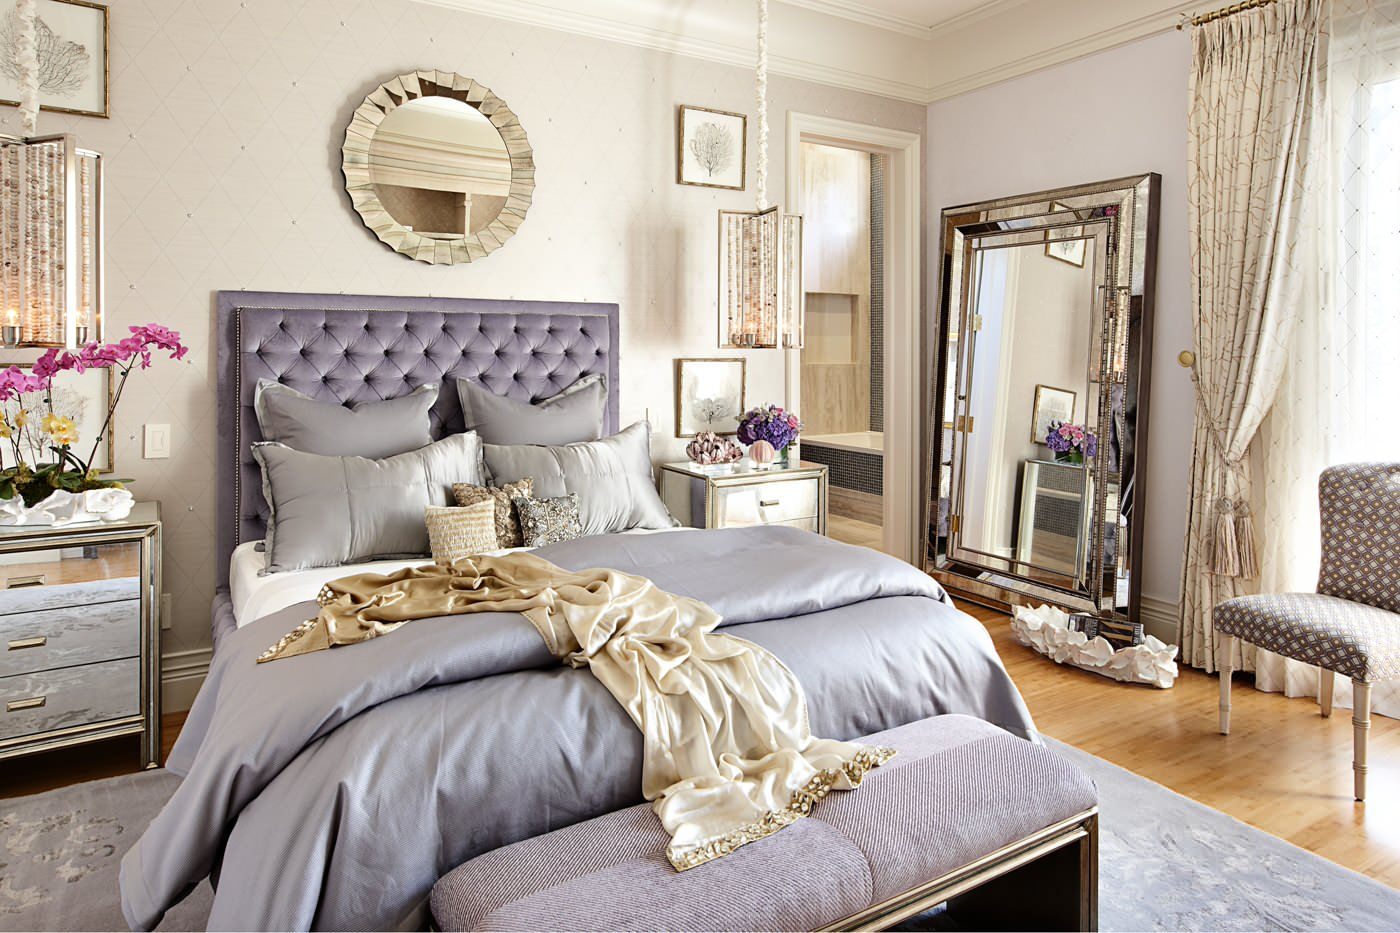 Las vegas bedroom purple princess adult idea shop room ideas mirror